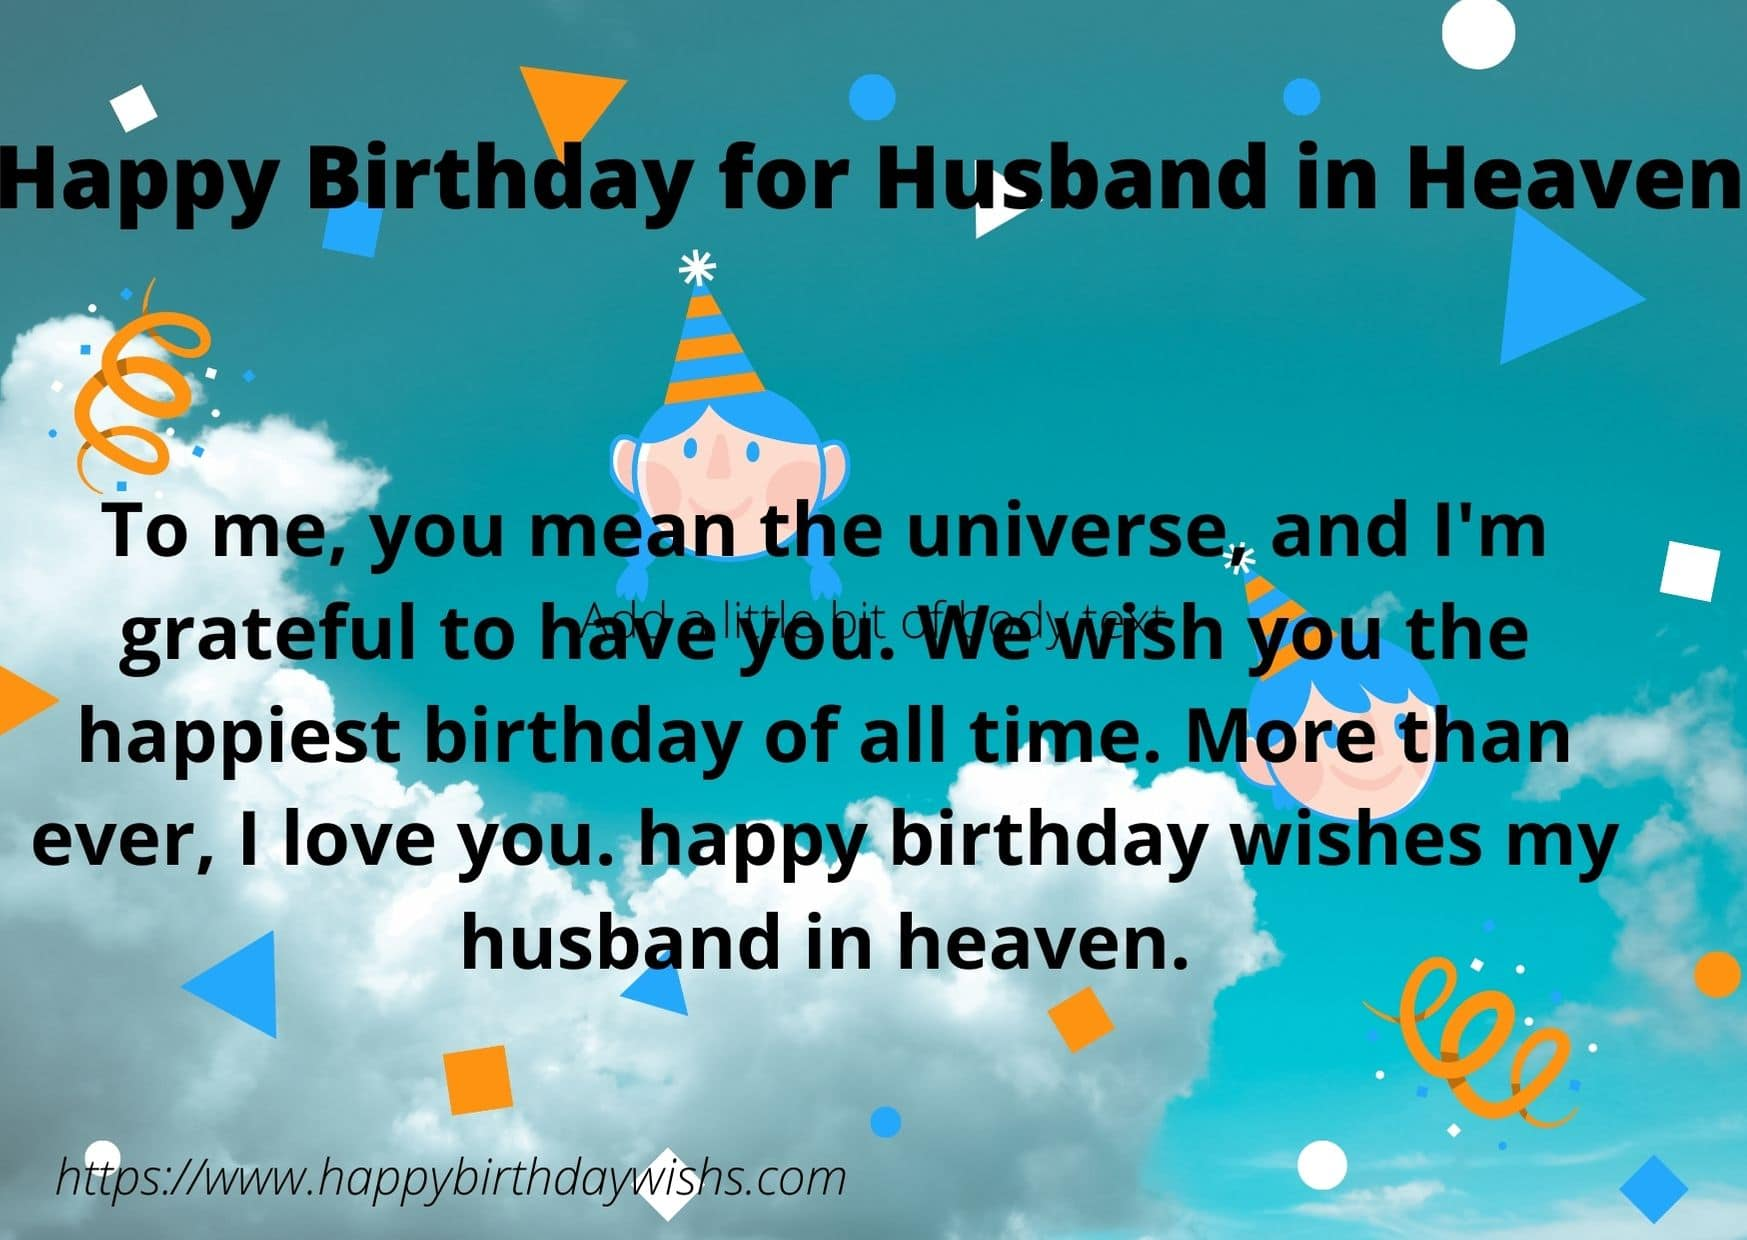 happy birthday wishes to my husband in heaven